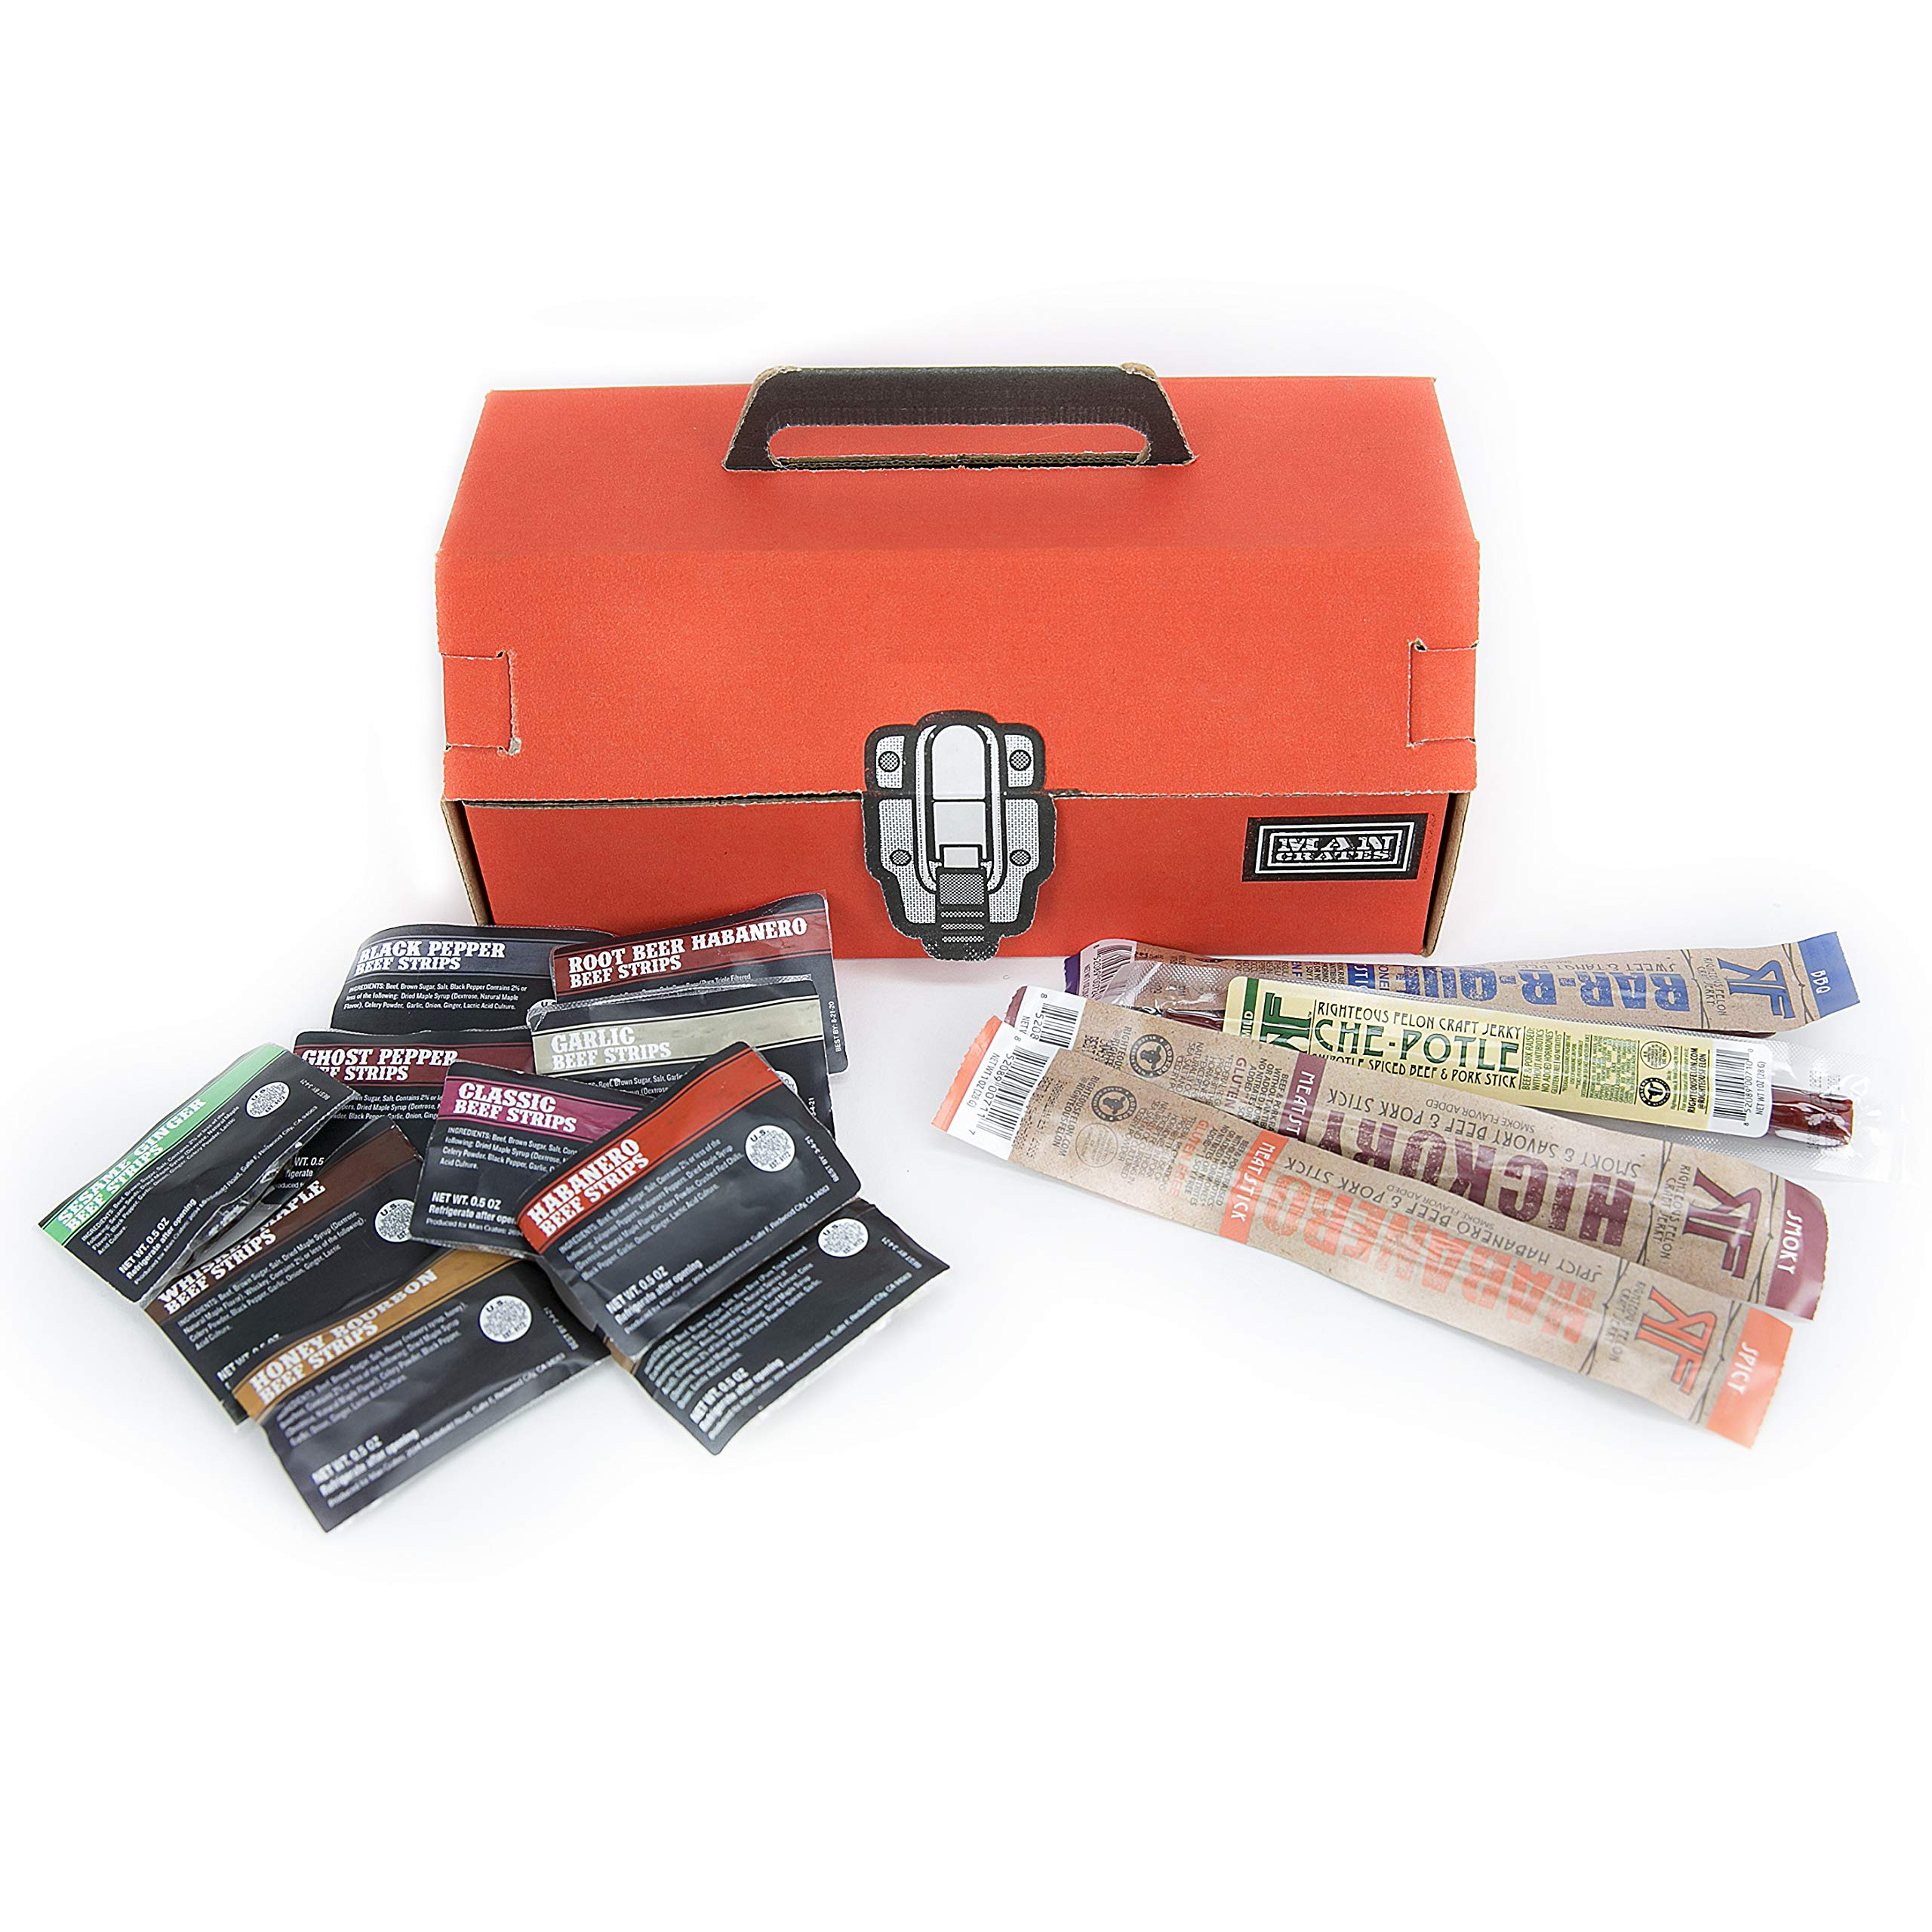 Man Crates Jerky Tool Box - Unique Gift For Men - Includes 14 Delicious Beef Jerky Flavors - In A Delightfully Surprising Tool-Shaped Box